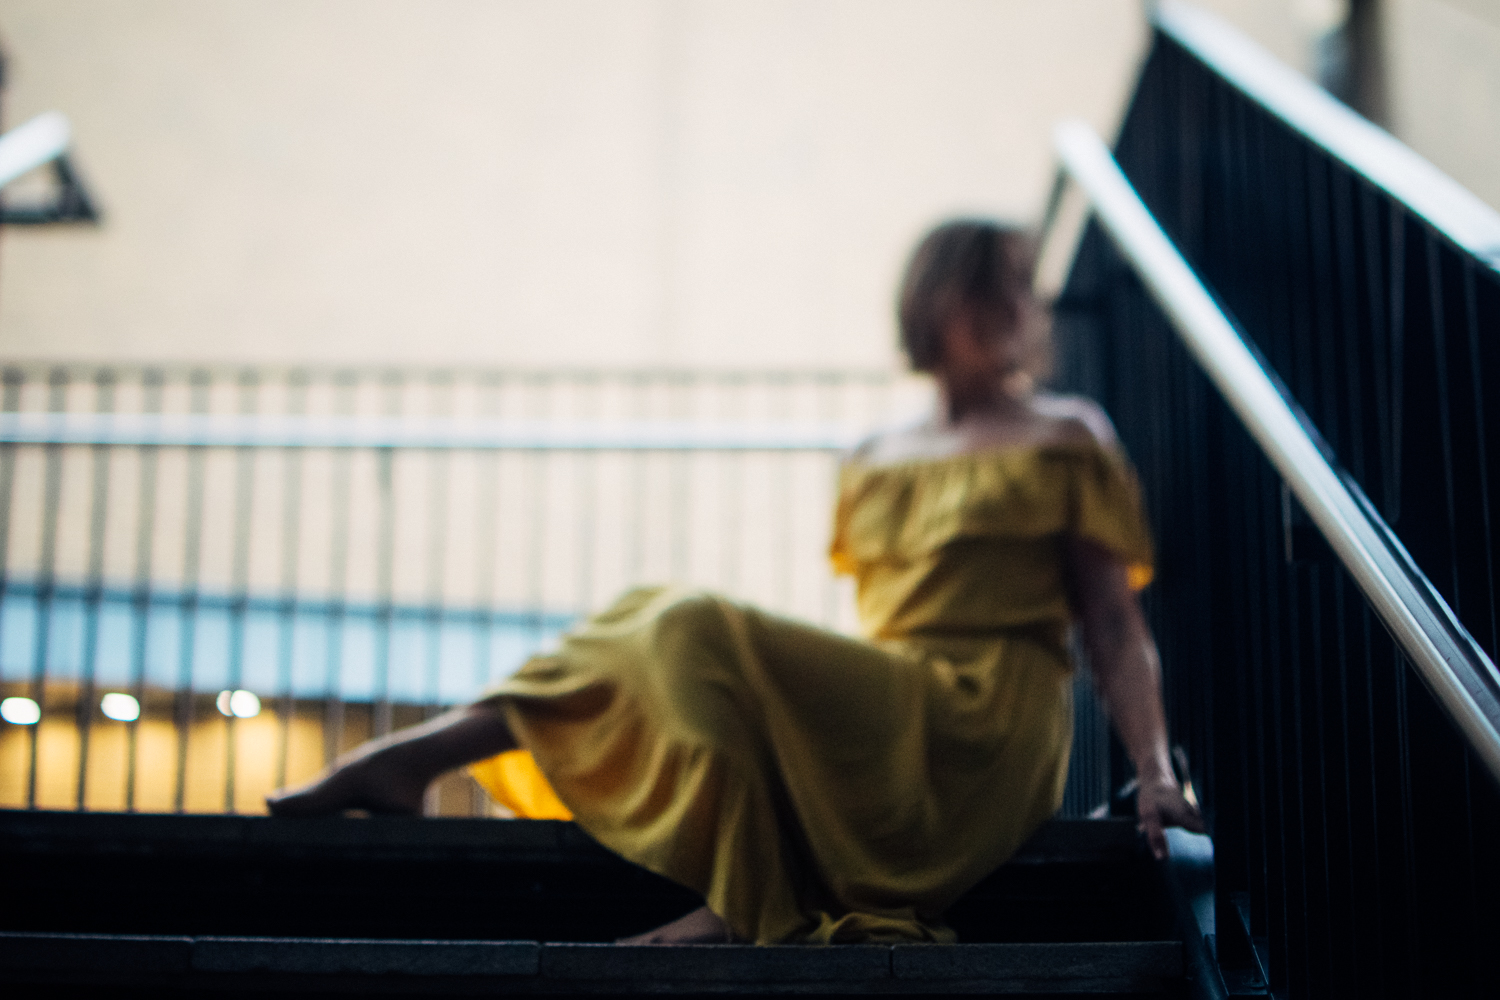 4 Travelling-Mustard-Dress-Cambridge-Photographer-Diana-Hagues.jpg